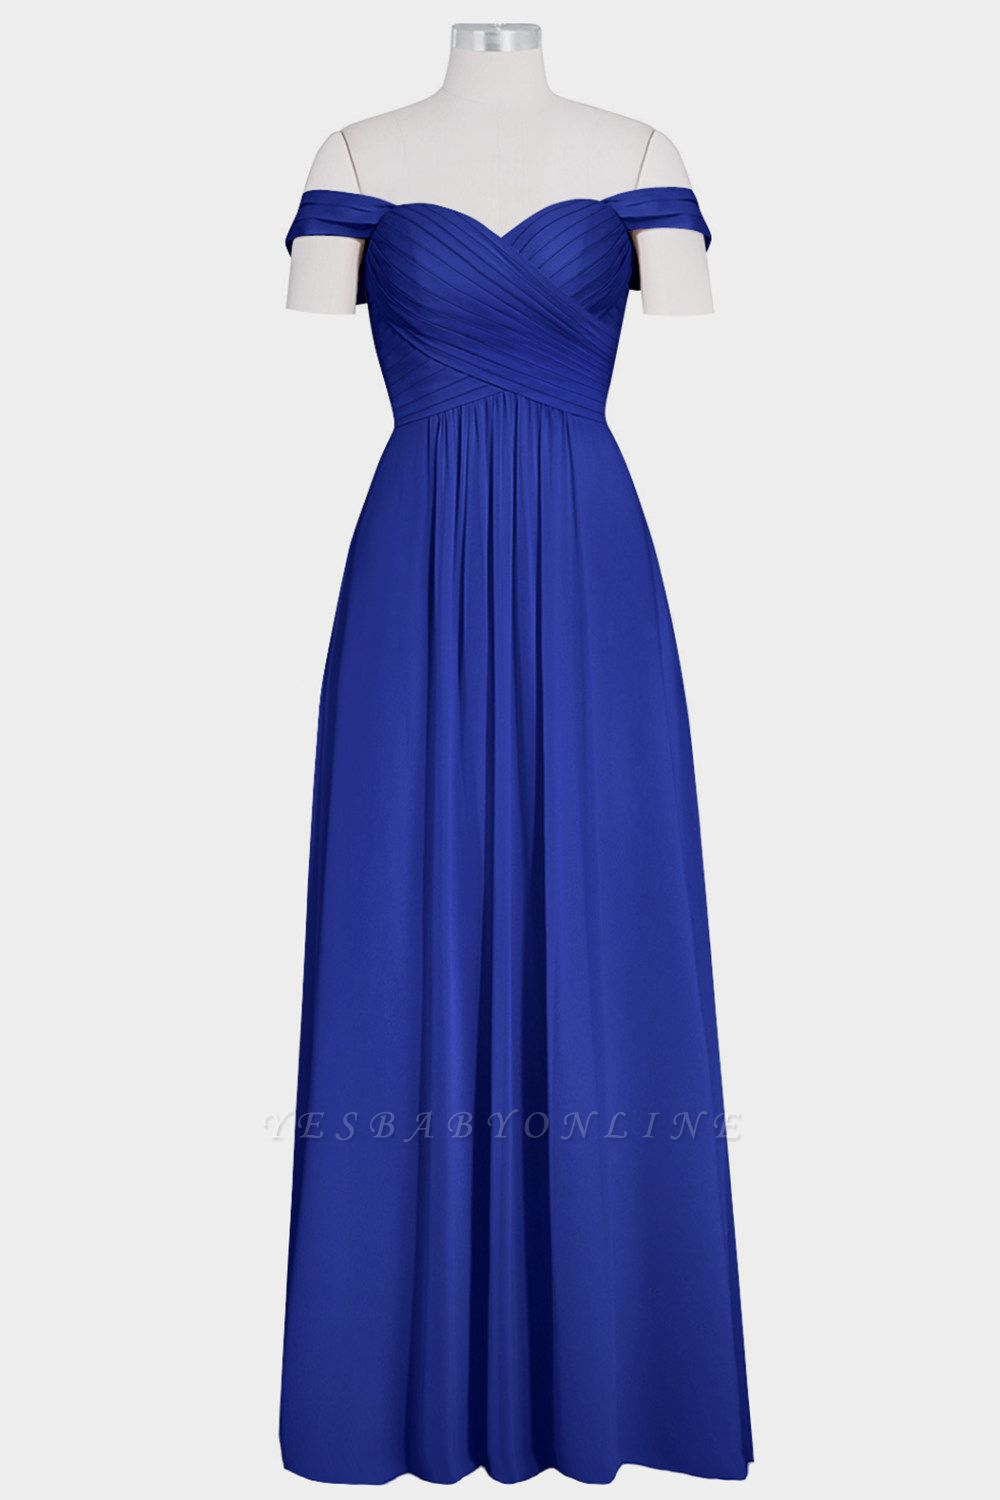 A Line Chiffon Off-the-Shoulder Sweetheart Floor Length Bridesmaid Dresses